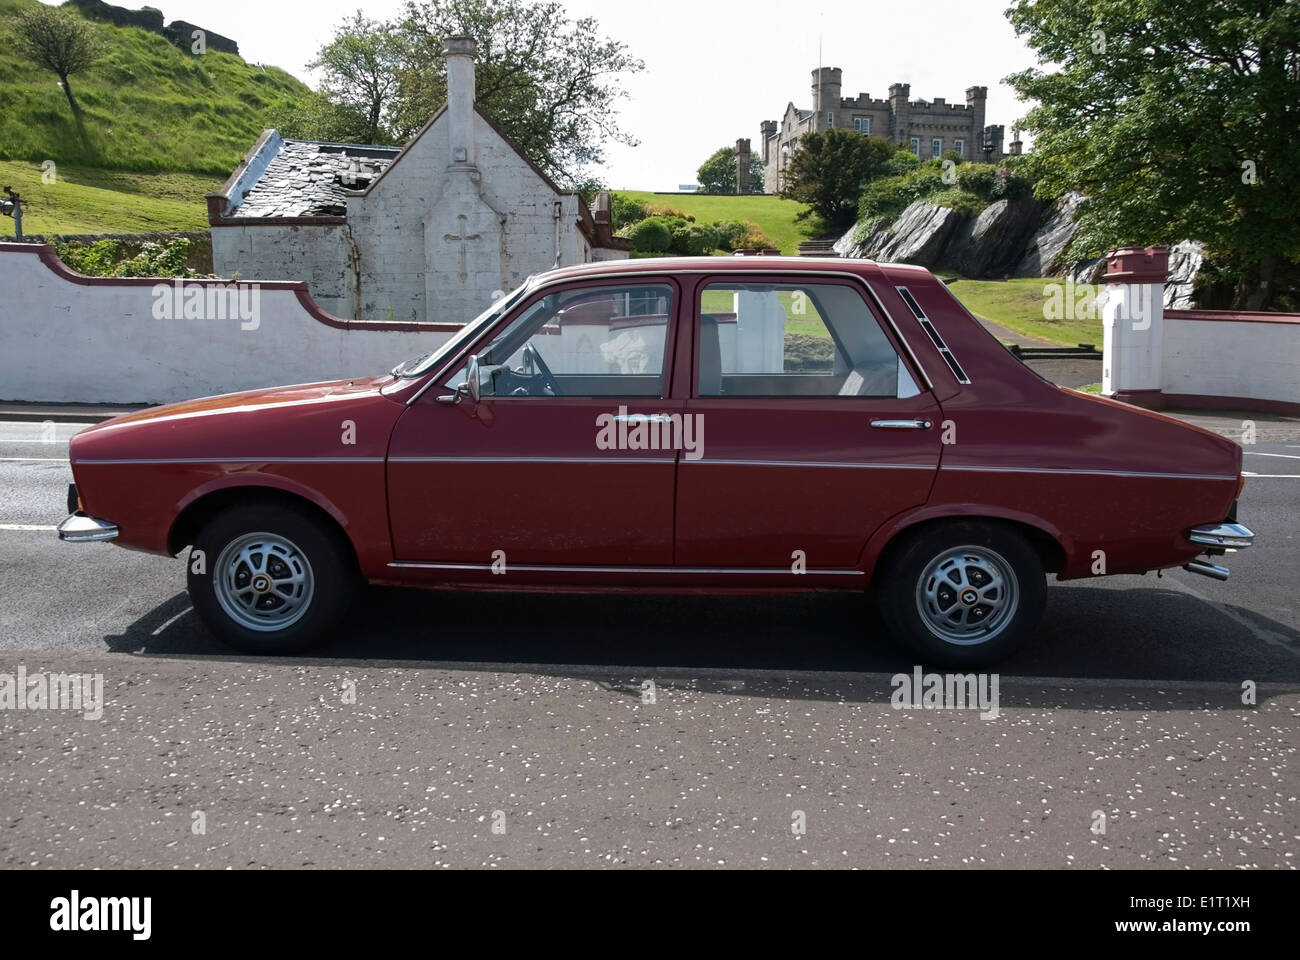 1972 red renault 12tl french motor car stock photo royalty free image 69984505 alamy. Black Bedroom Furniture Sets. Home Design Ideas